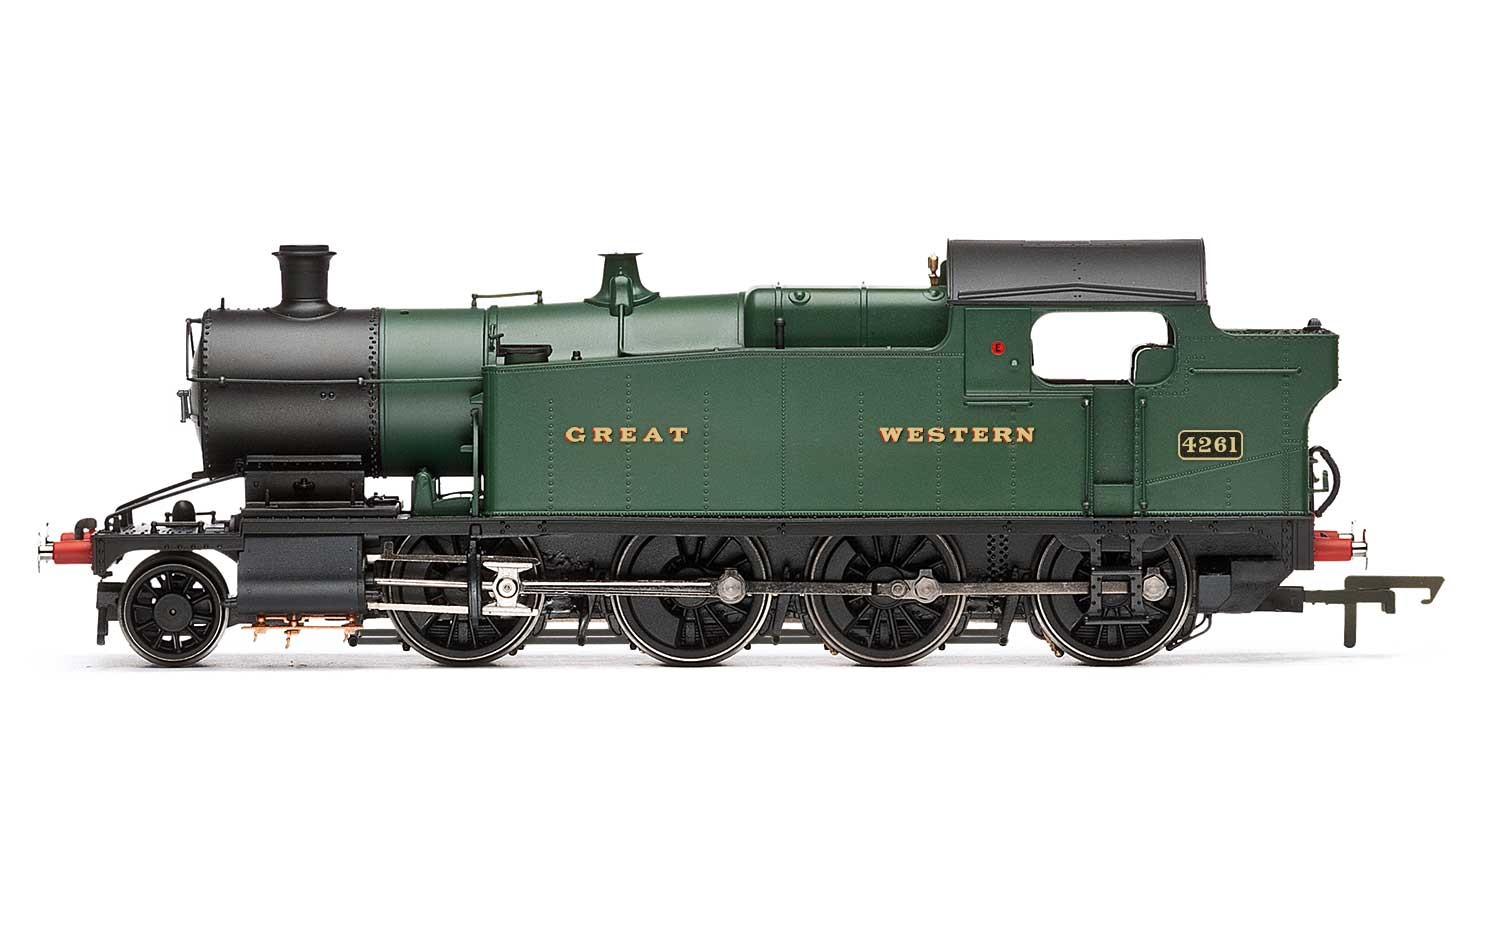 Hornby R3332 GWR 4261 2-8-0T Tank Engine Locomotive Train OO Gauge DCC ...